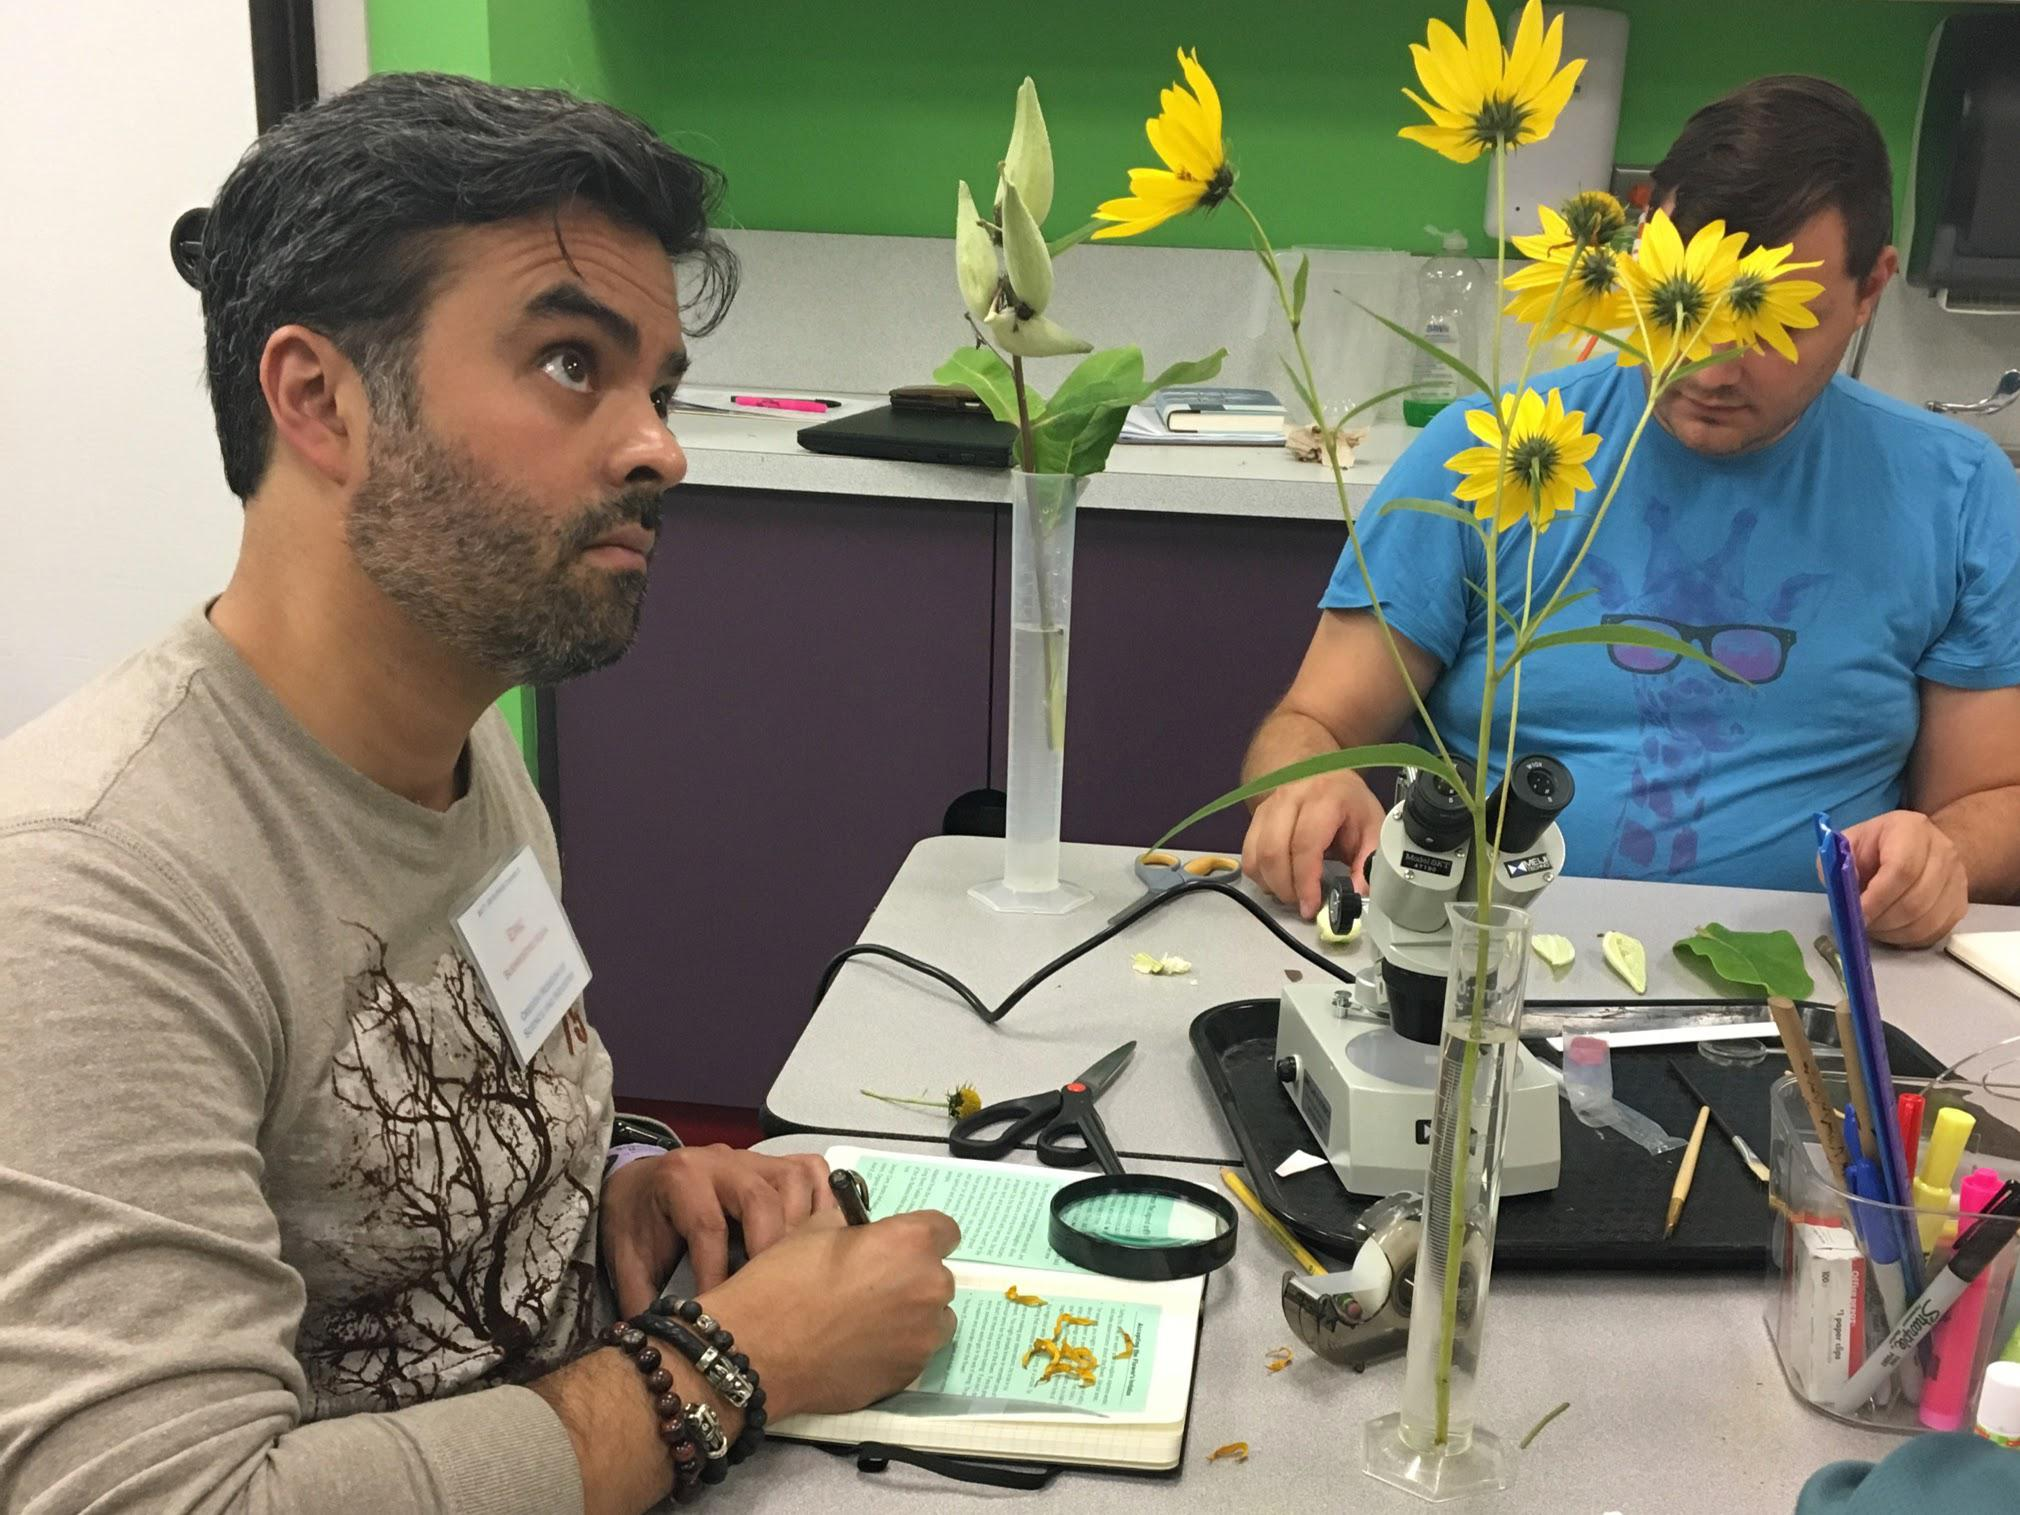 A person looking at a flower, making notes.